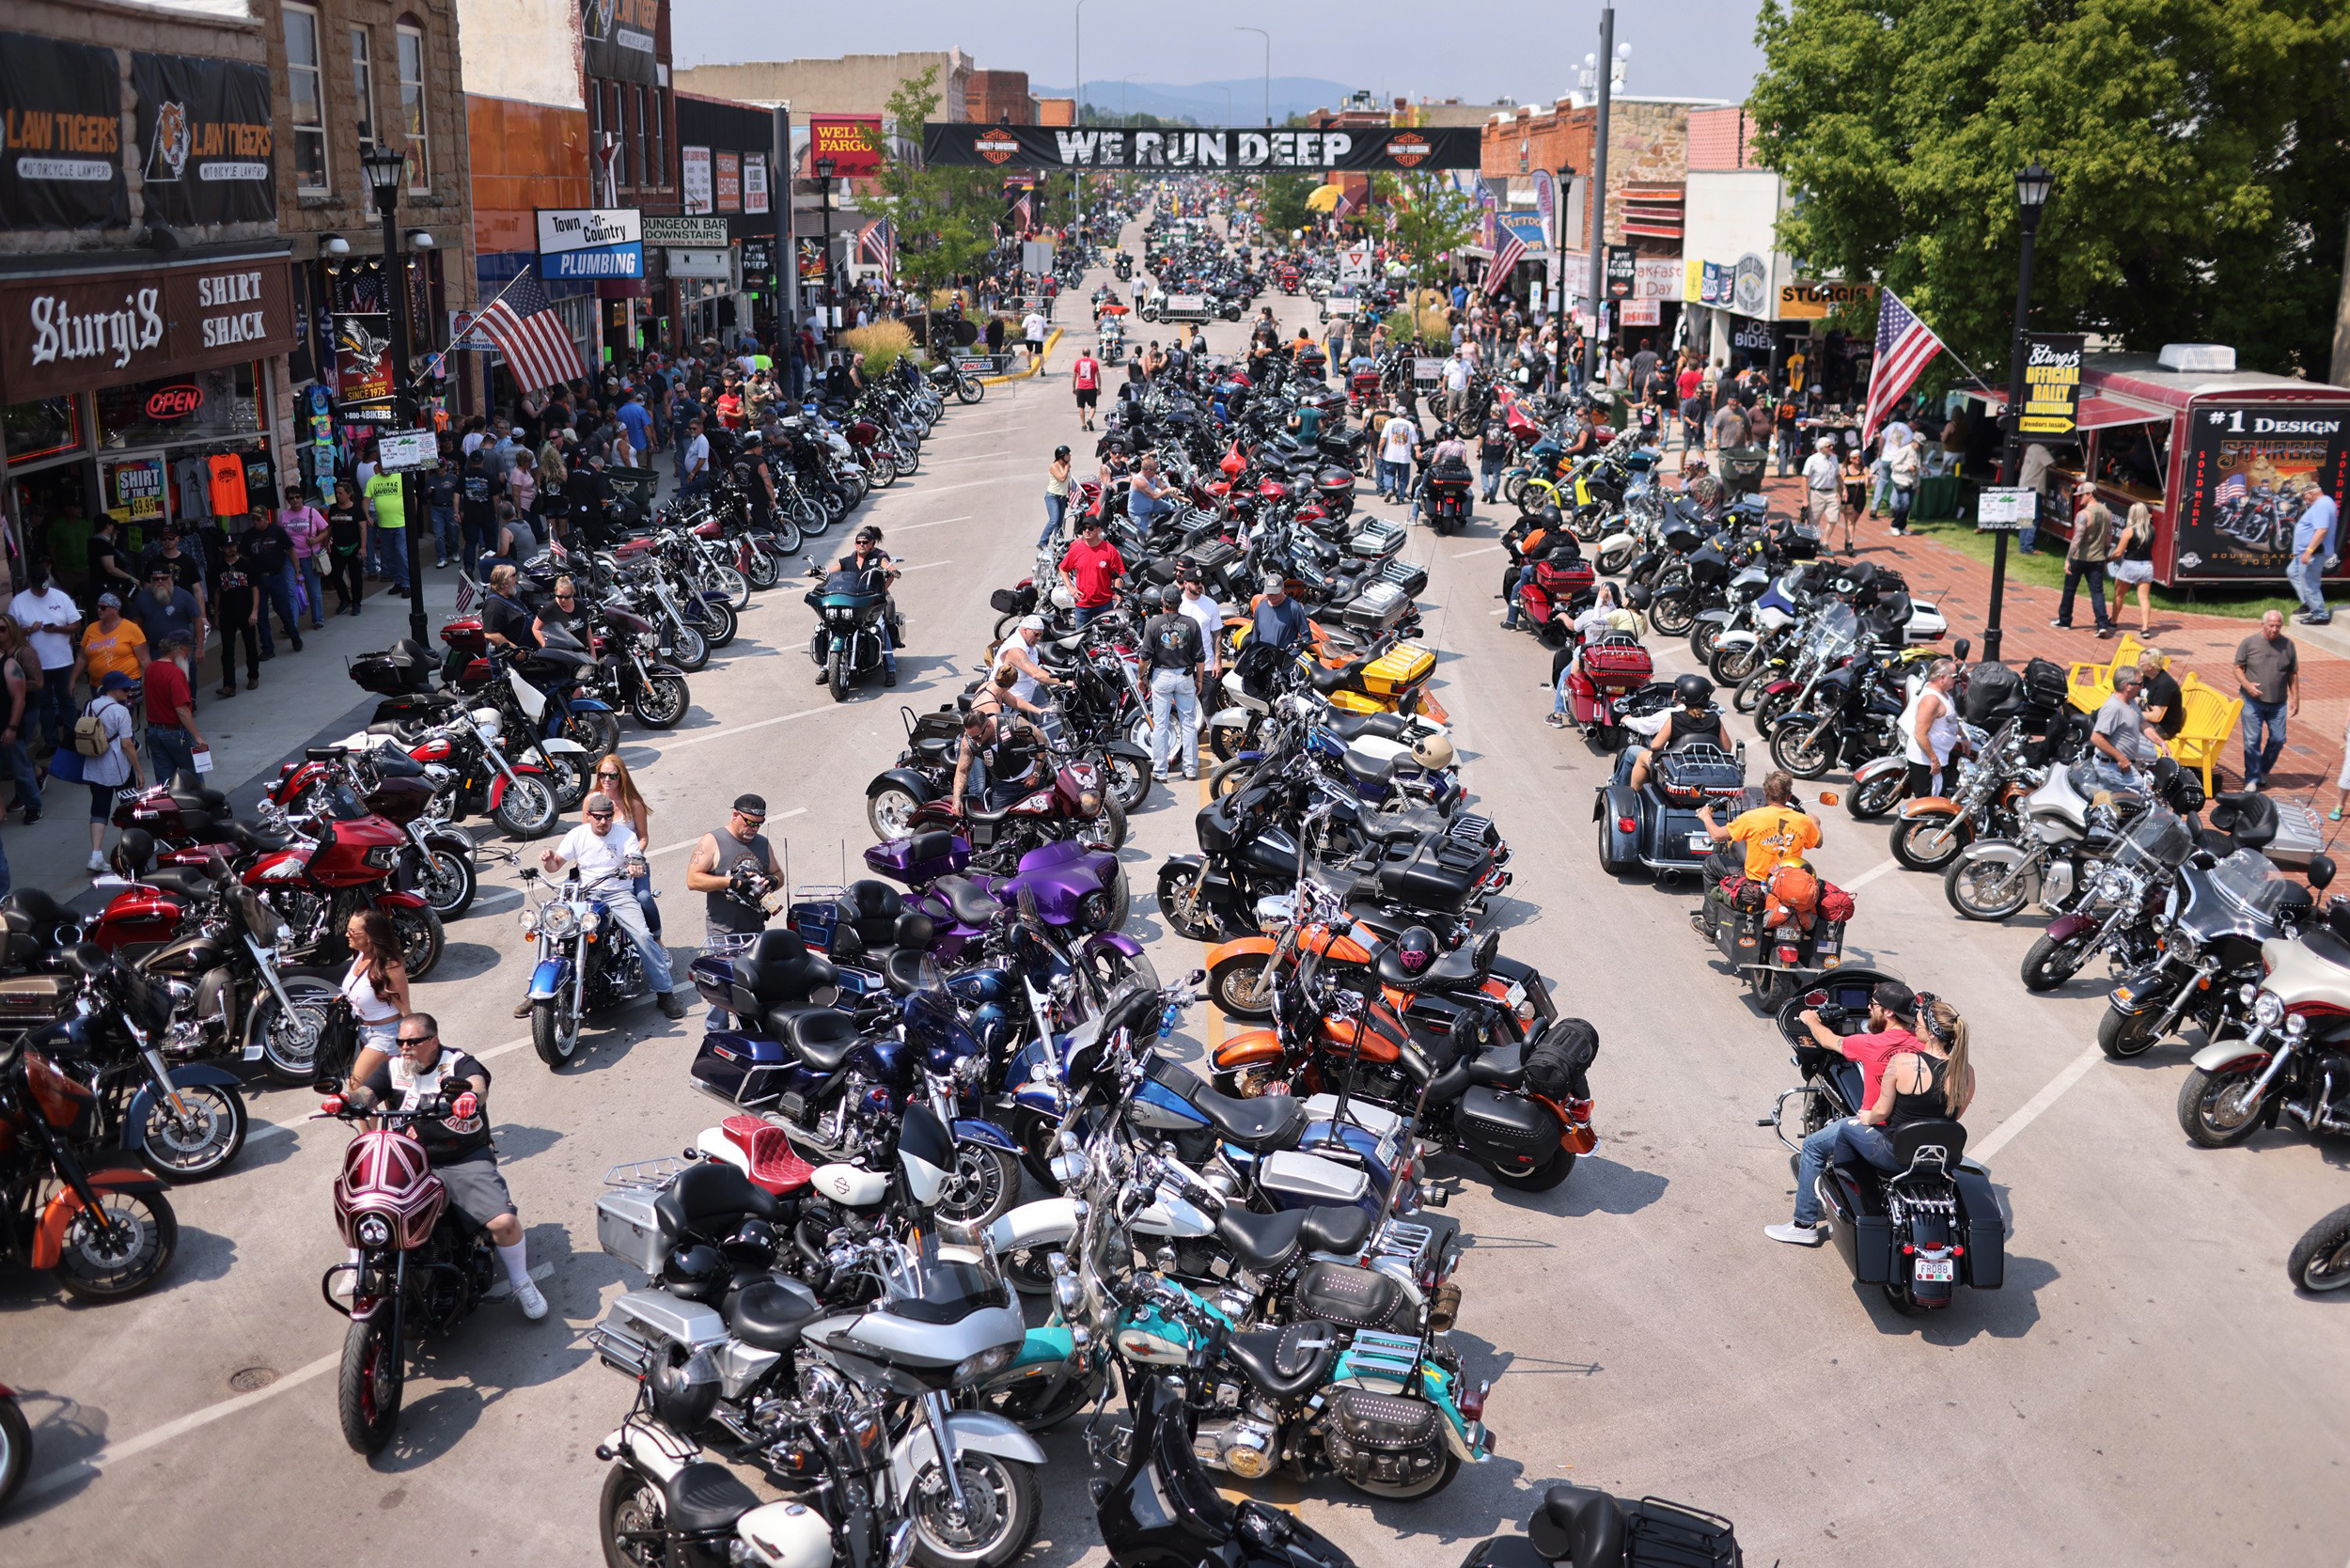 Cases in South Dakota rise nearly sixfold after annual Sturgis motorcycle rally